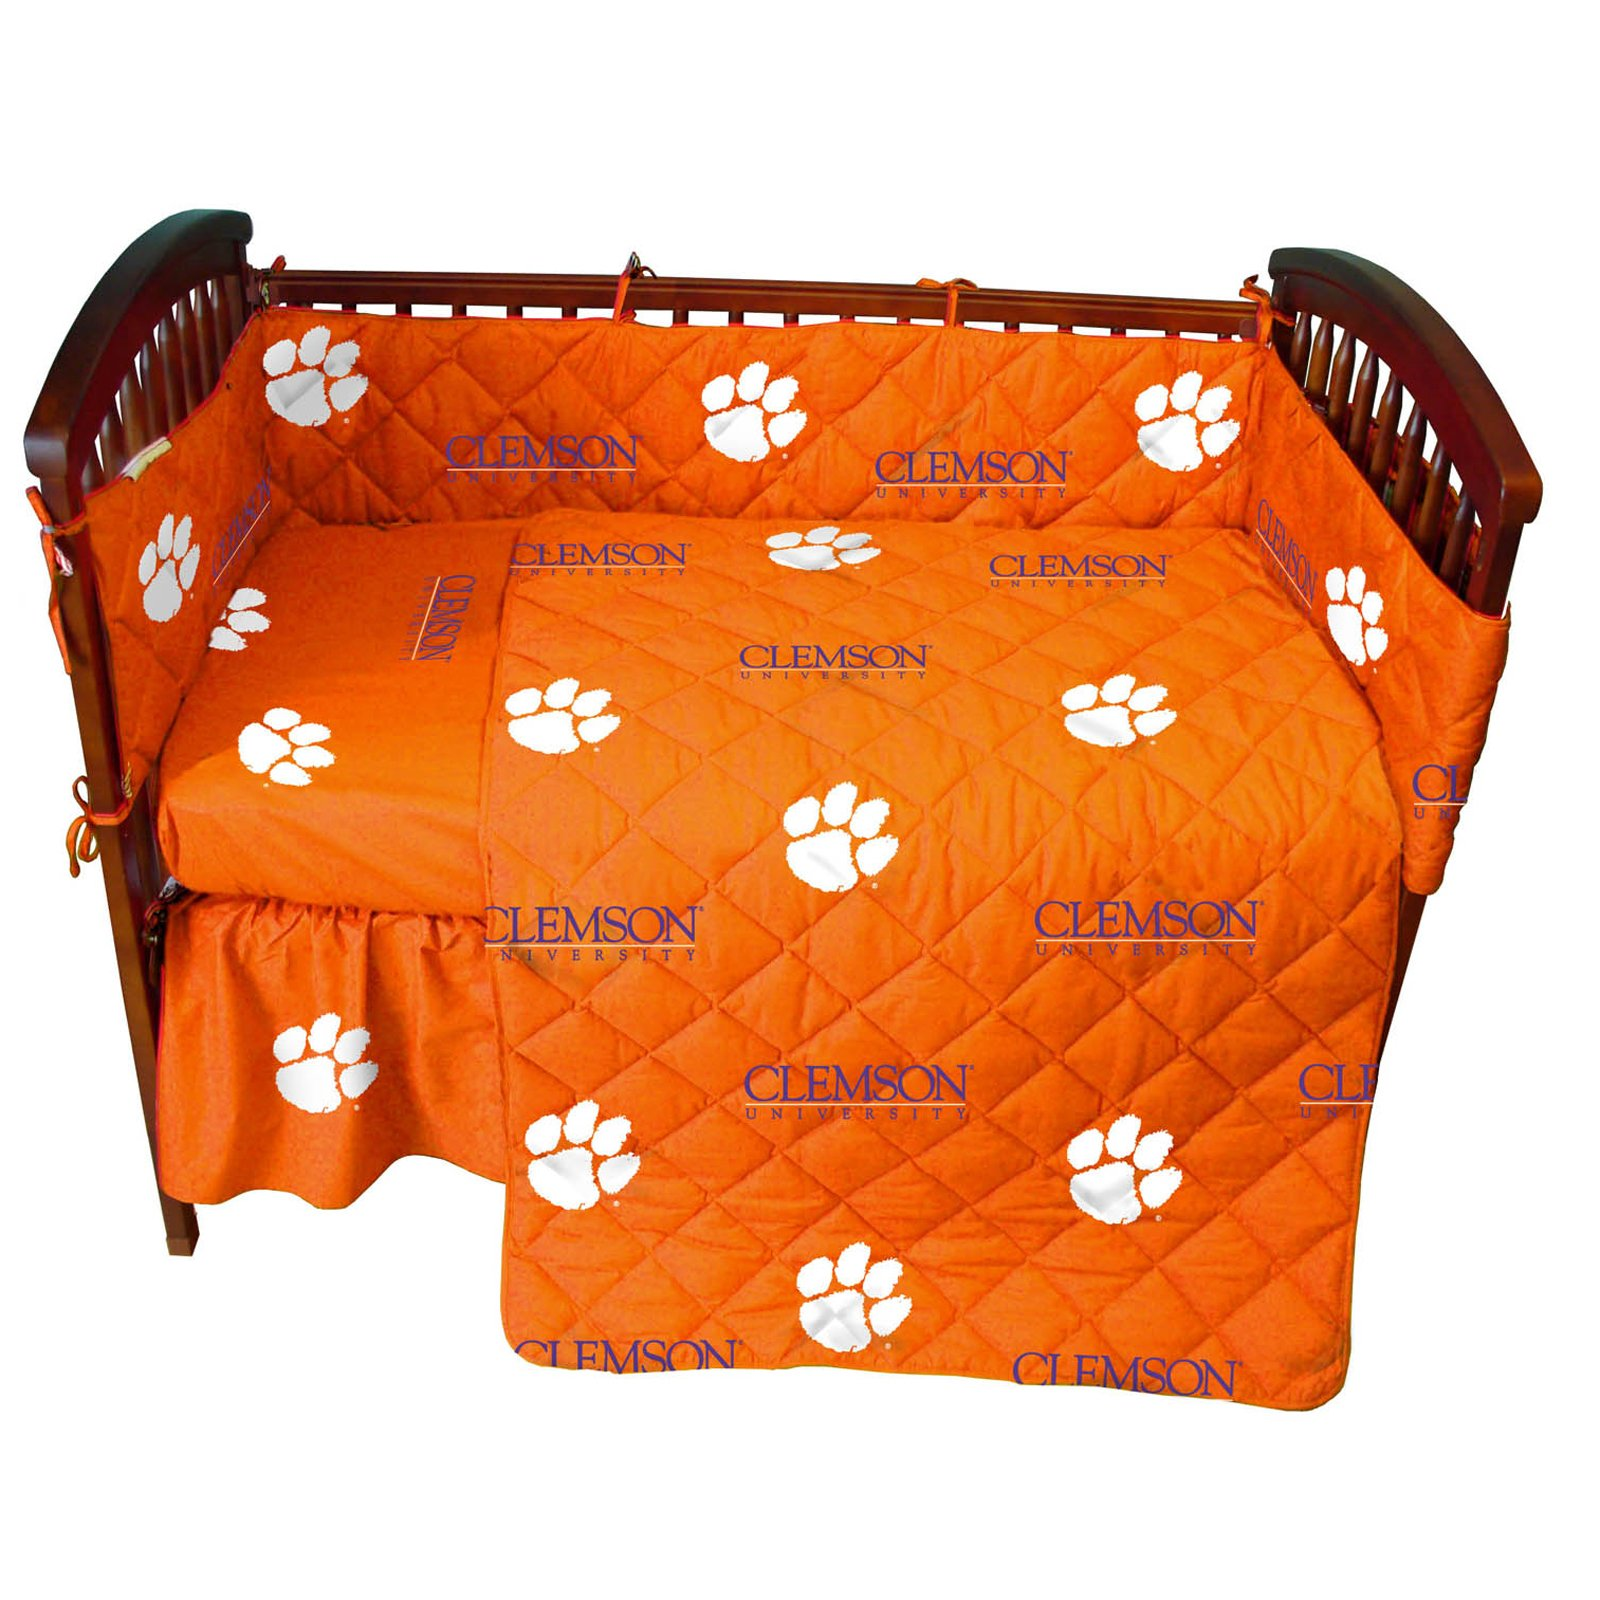 Clemson Tigers 5 Piece Crib Set - Entire Set includes: (1) Reversible Comforter, (1) Bed Skirt , (2) Fitted Sheets and (1) Bumper Pad - Decorate Your Nursery and Save Big By Bundling!